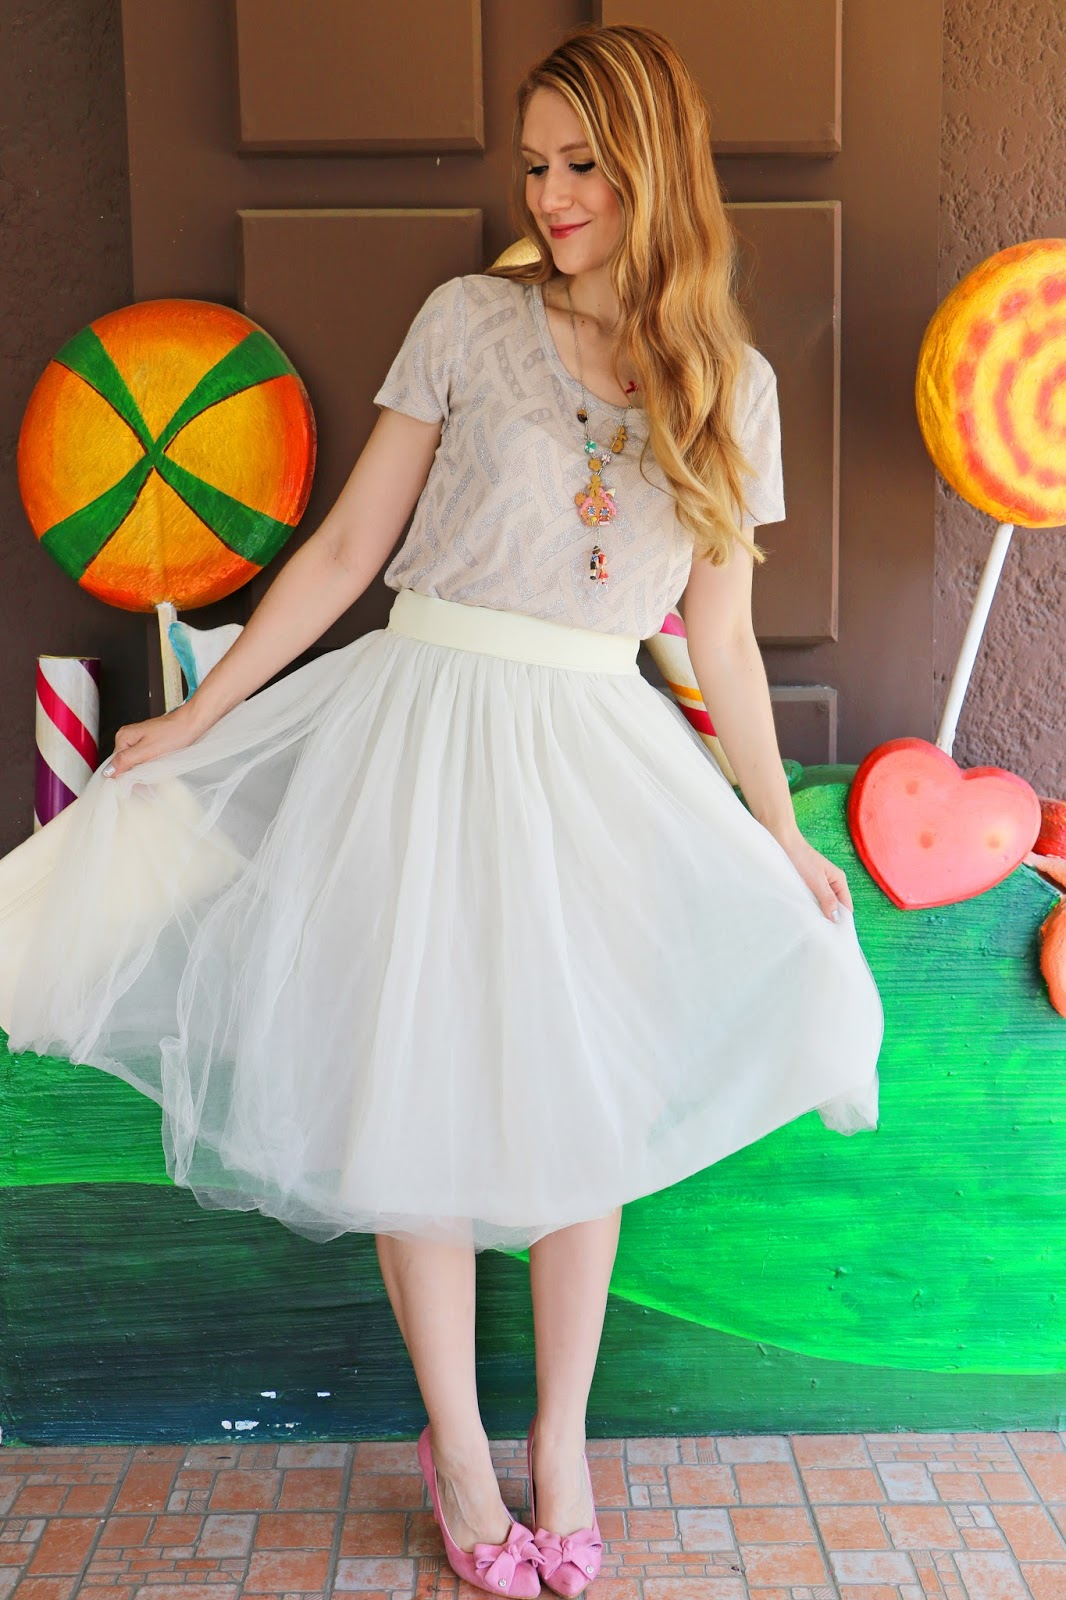 Love this white tull skirt outfit for the Holiday!